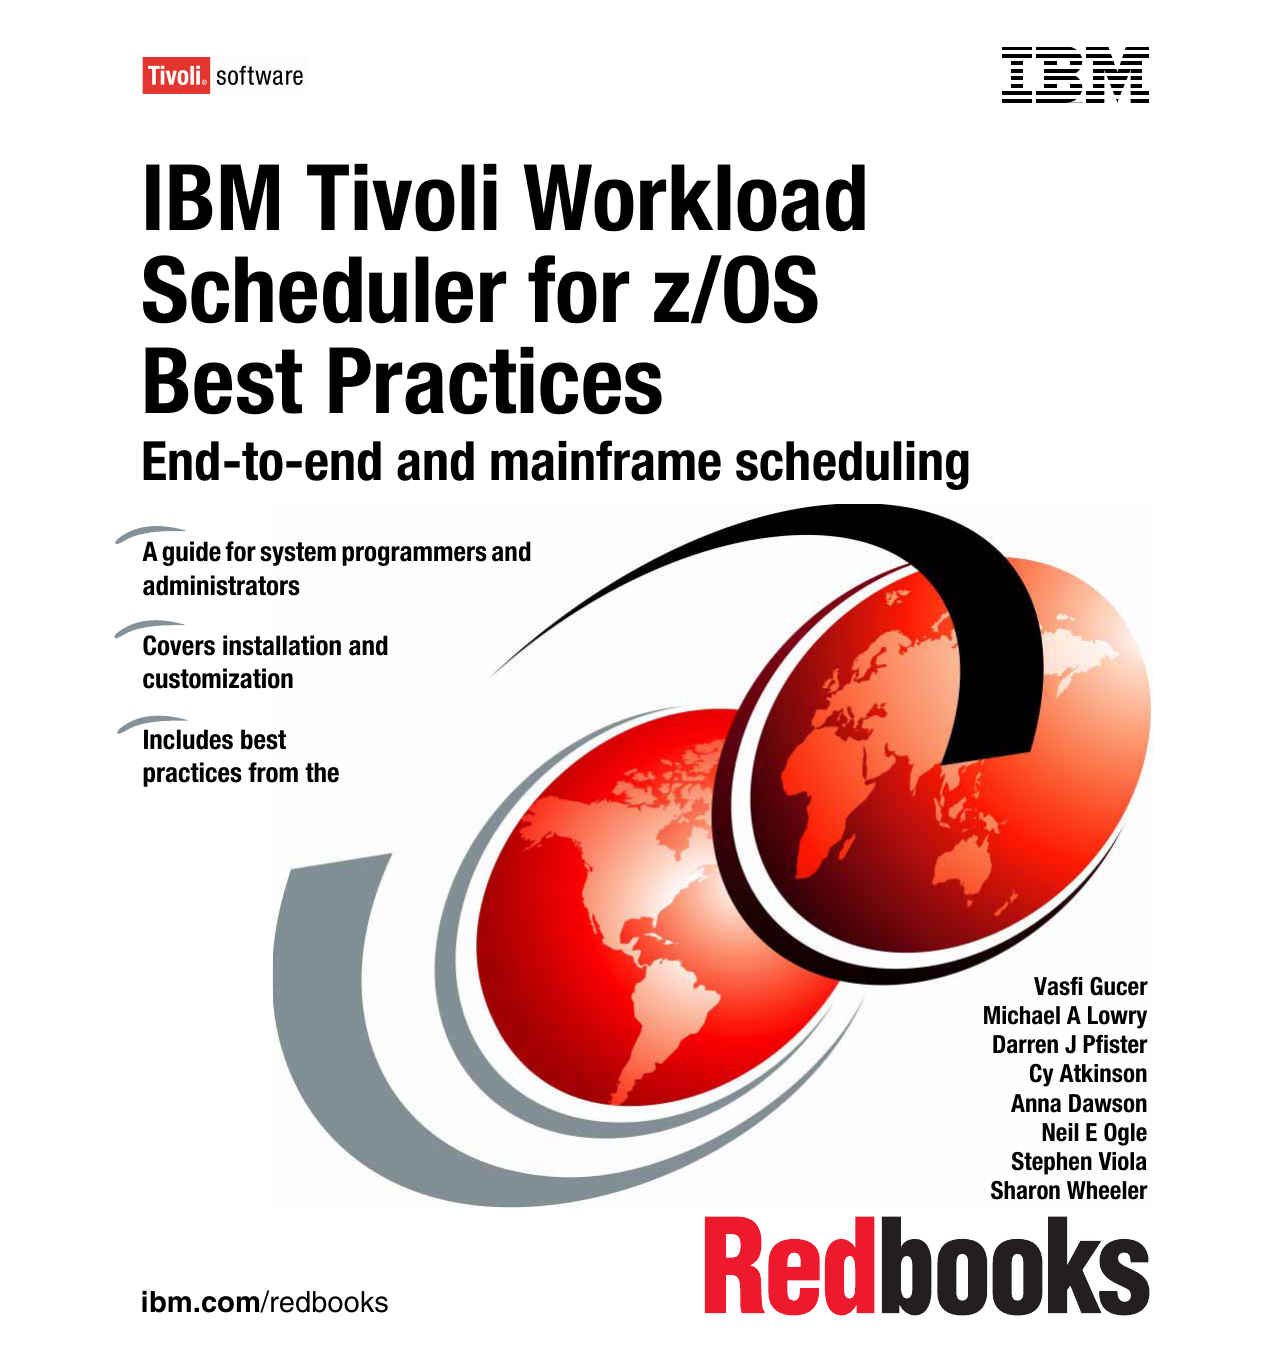 IBM Tivoli Workload Scheduler for z/OS Best Practices End-to